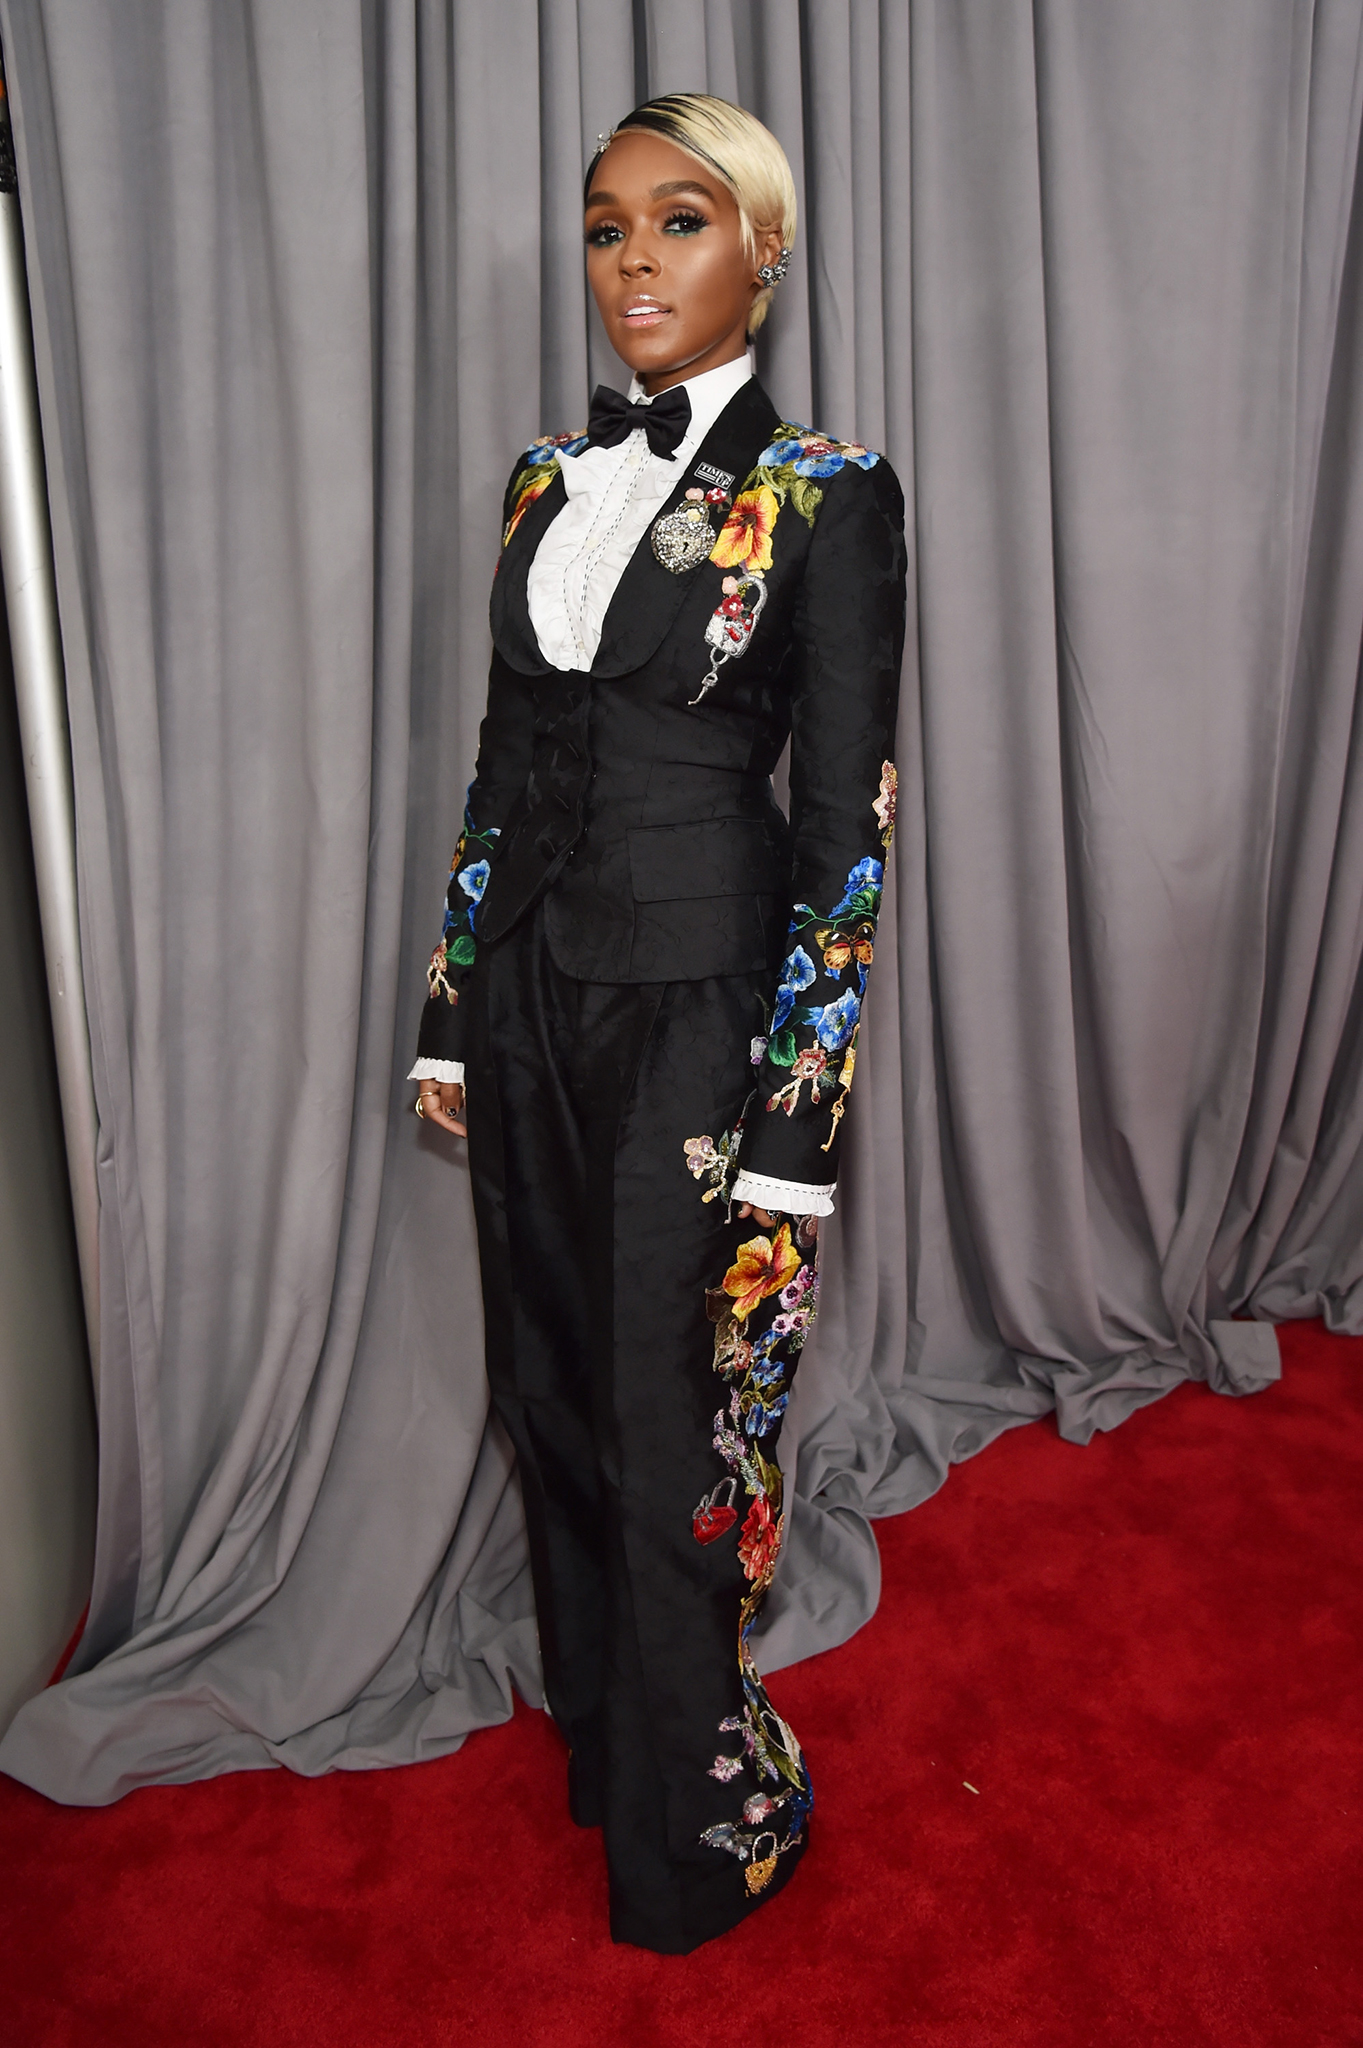 Recording artist and actor Janelle Monae attends the 60th Annual GRAMMY Awards at Madison Square Garden on Jan. 28, 2018 in New York City.